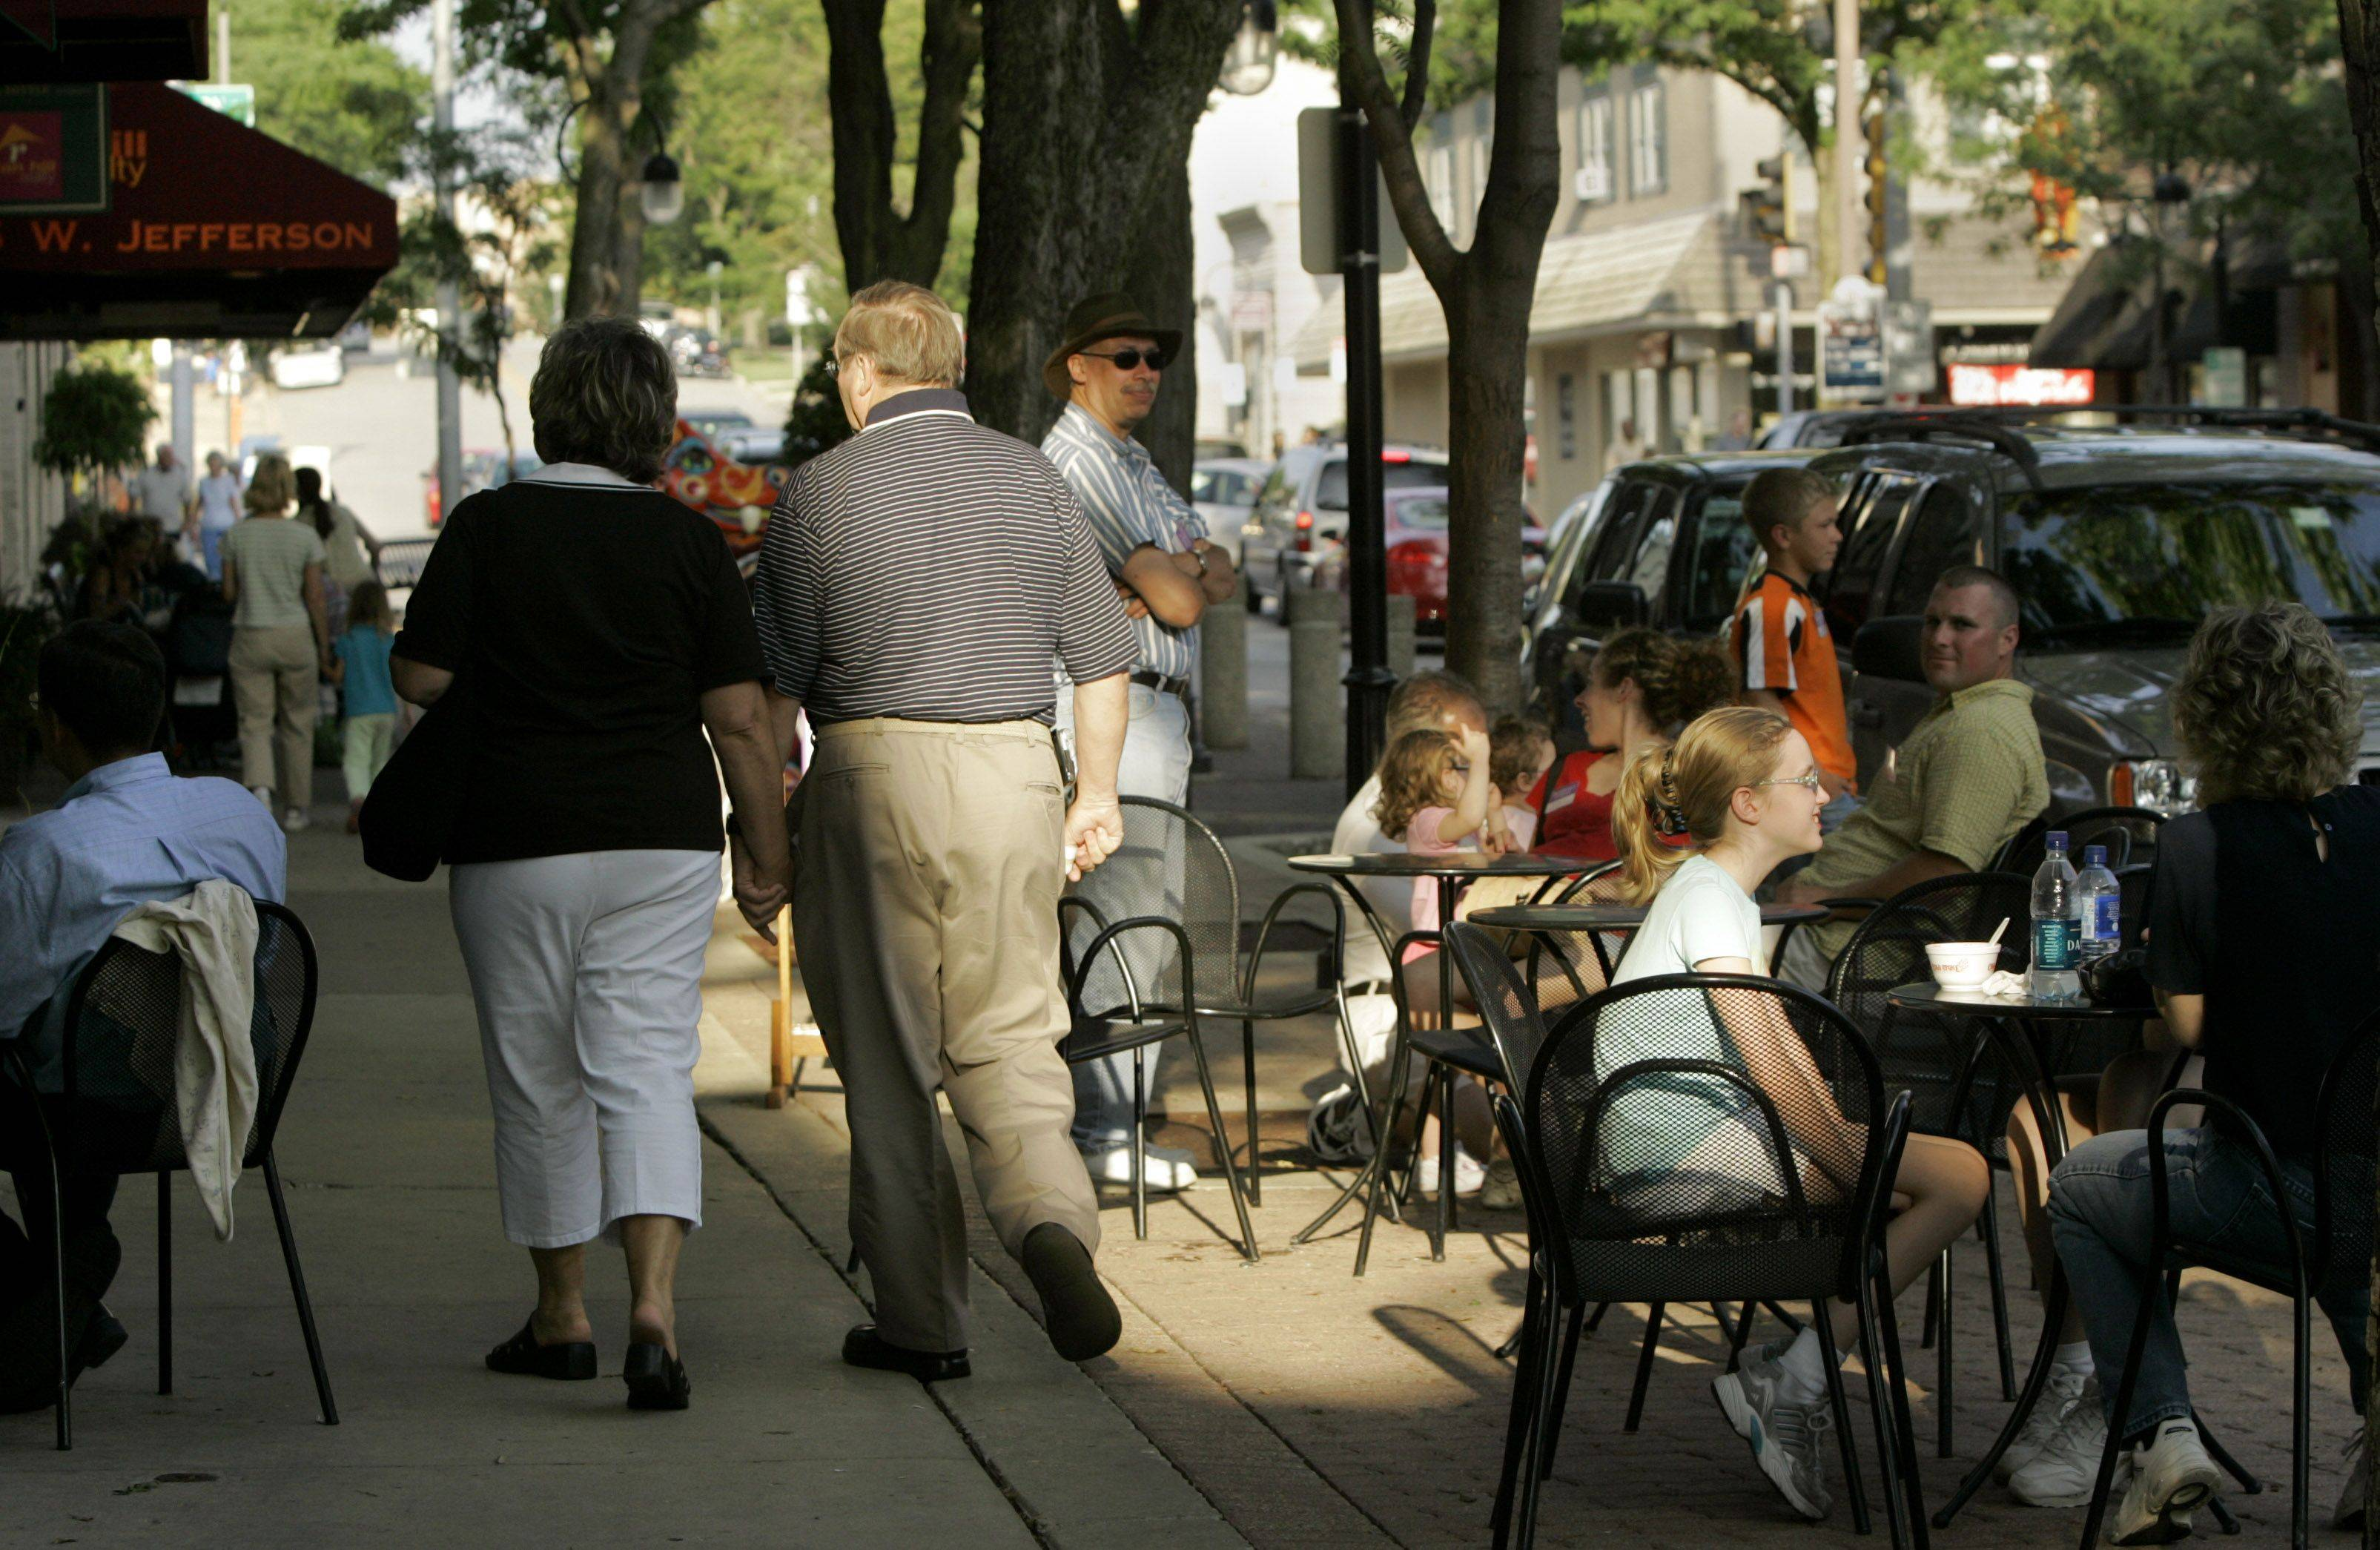 Summer in the city? No, downtown Naperville. Urban-style downtowns are a draw for new residents, experts say.